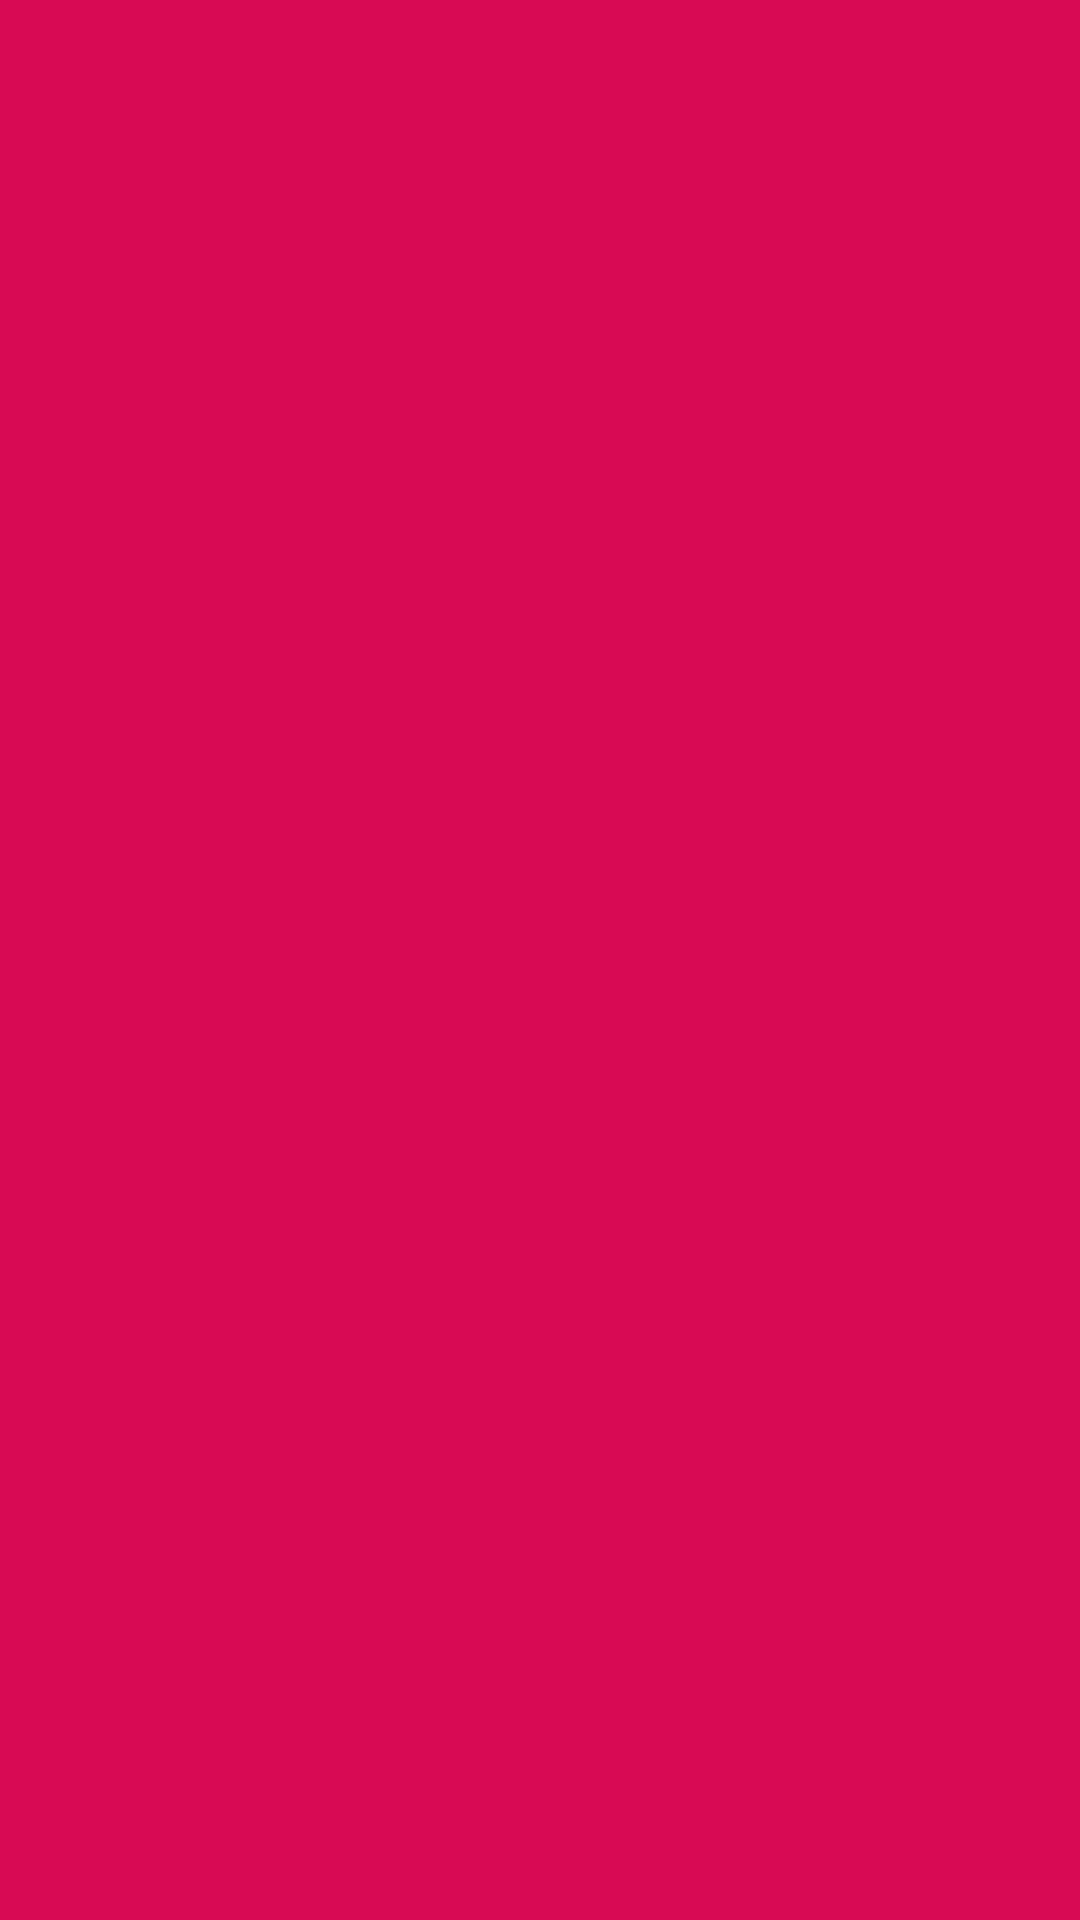 1080x1920 Debian Red Solid Color Background